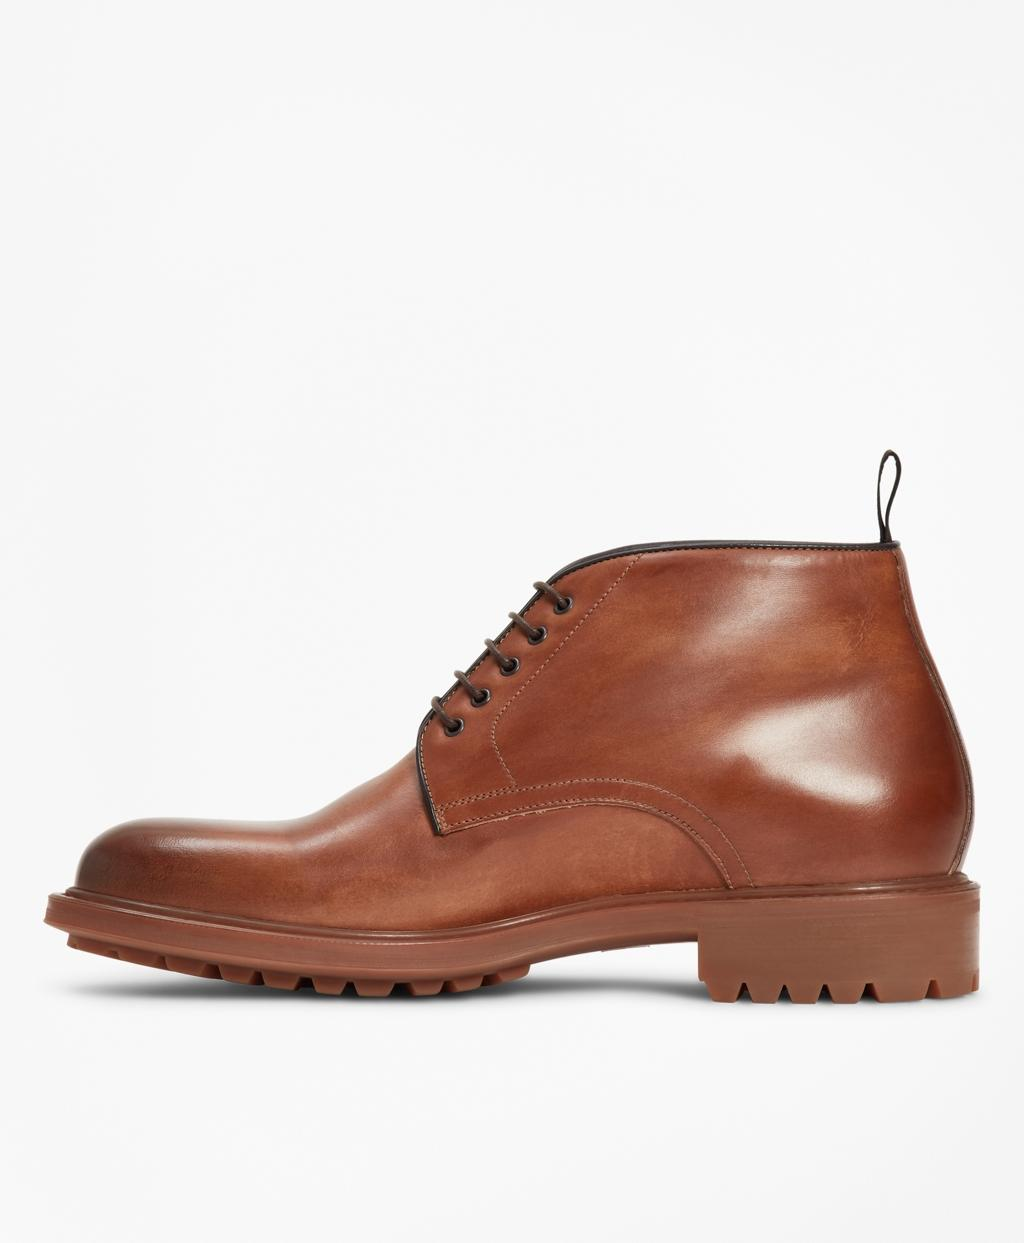 4f3d3171b17 Lyst - Brooks Brothers 1818 Footwear Lug-sole Leather Chukka Boots in Brown  for Men